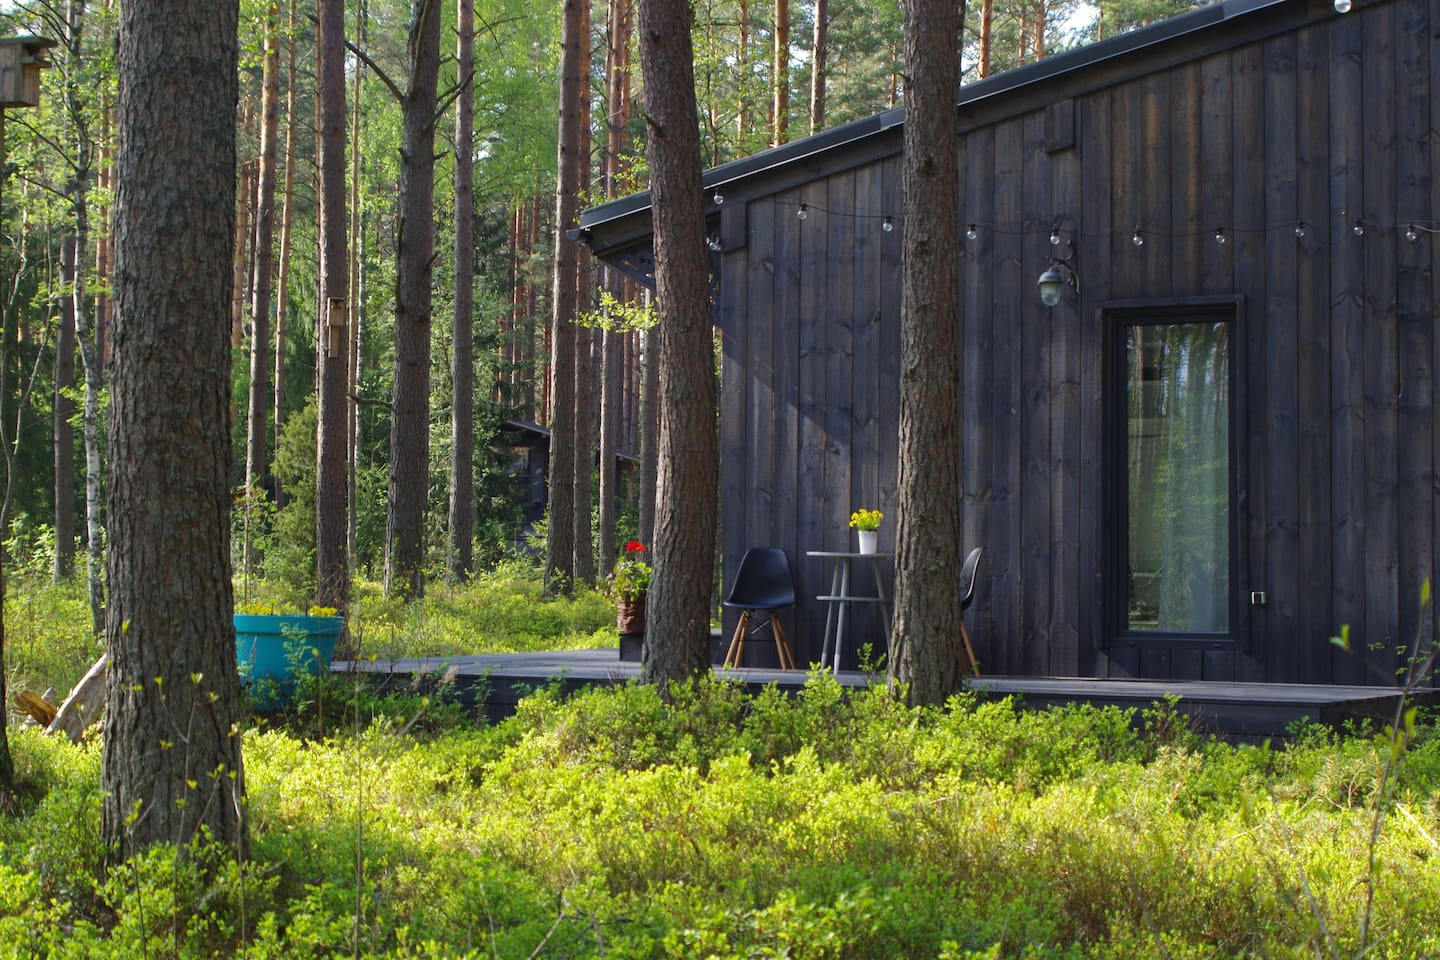 Summer-home deck where you can enjoy pine forest view and bird singing songs